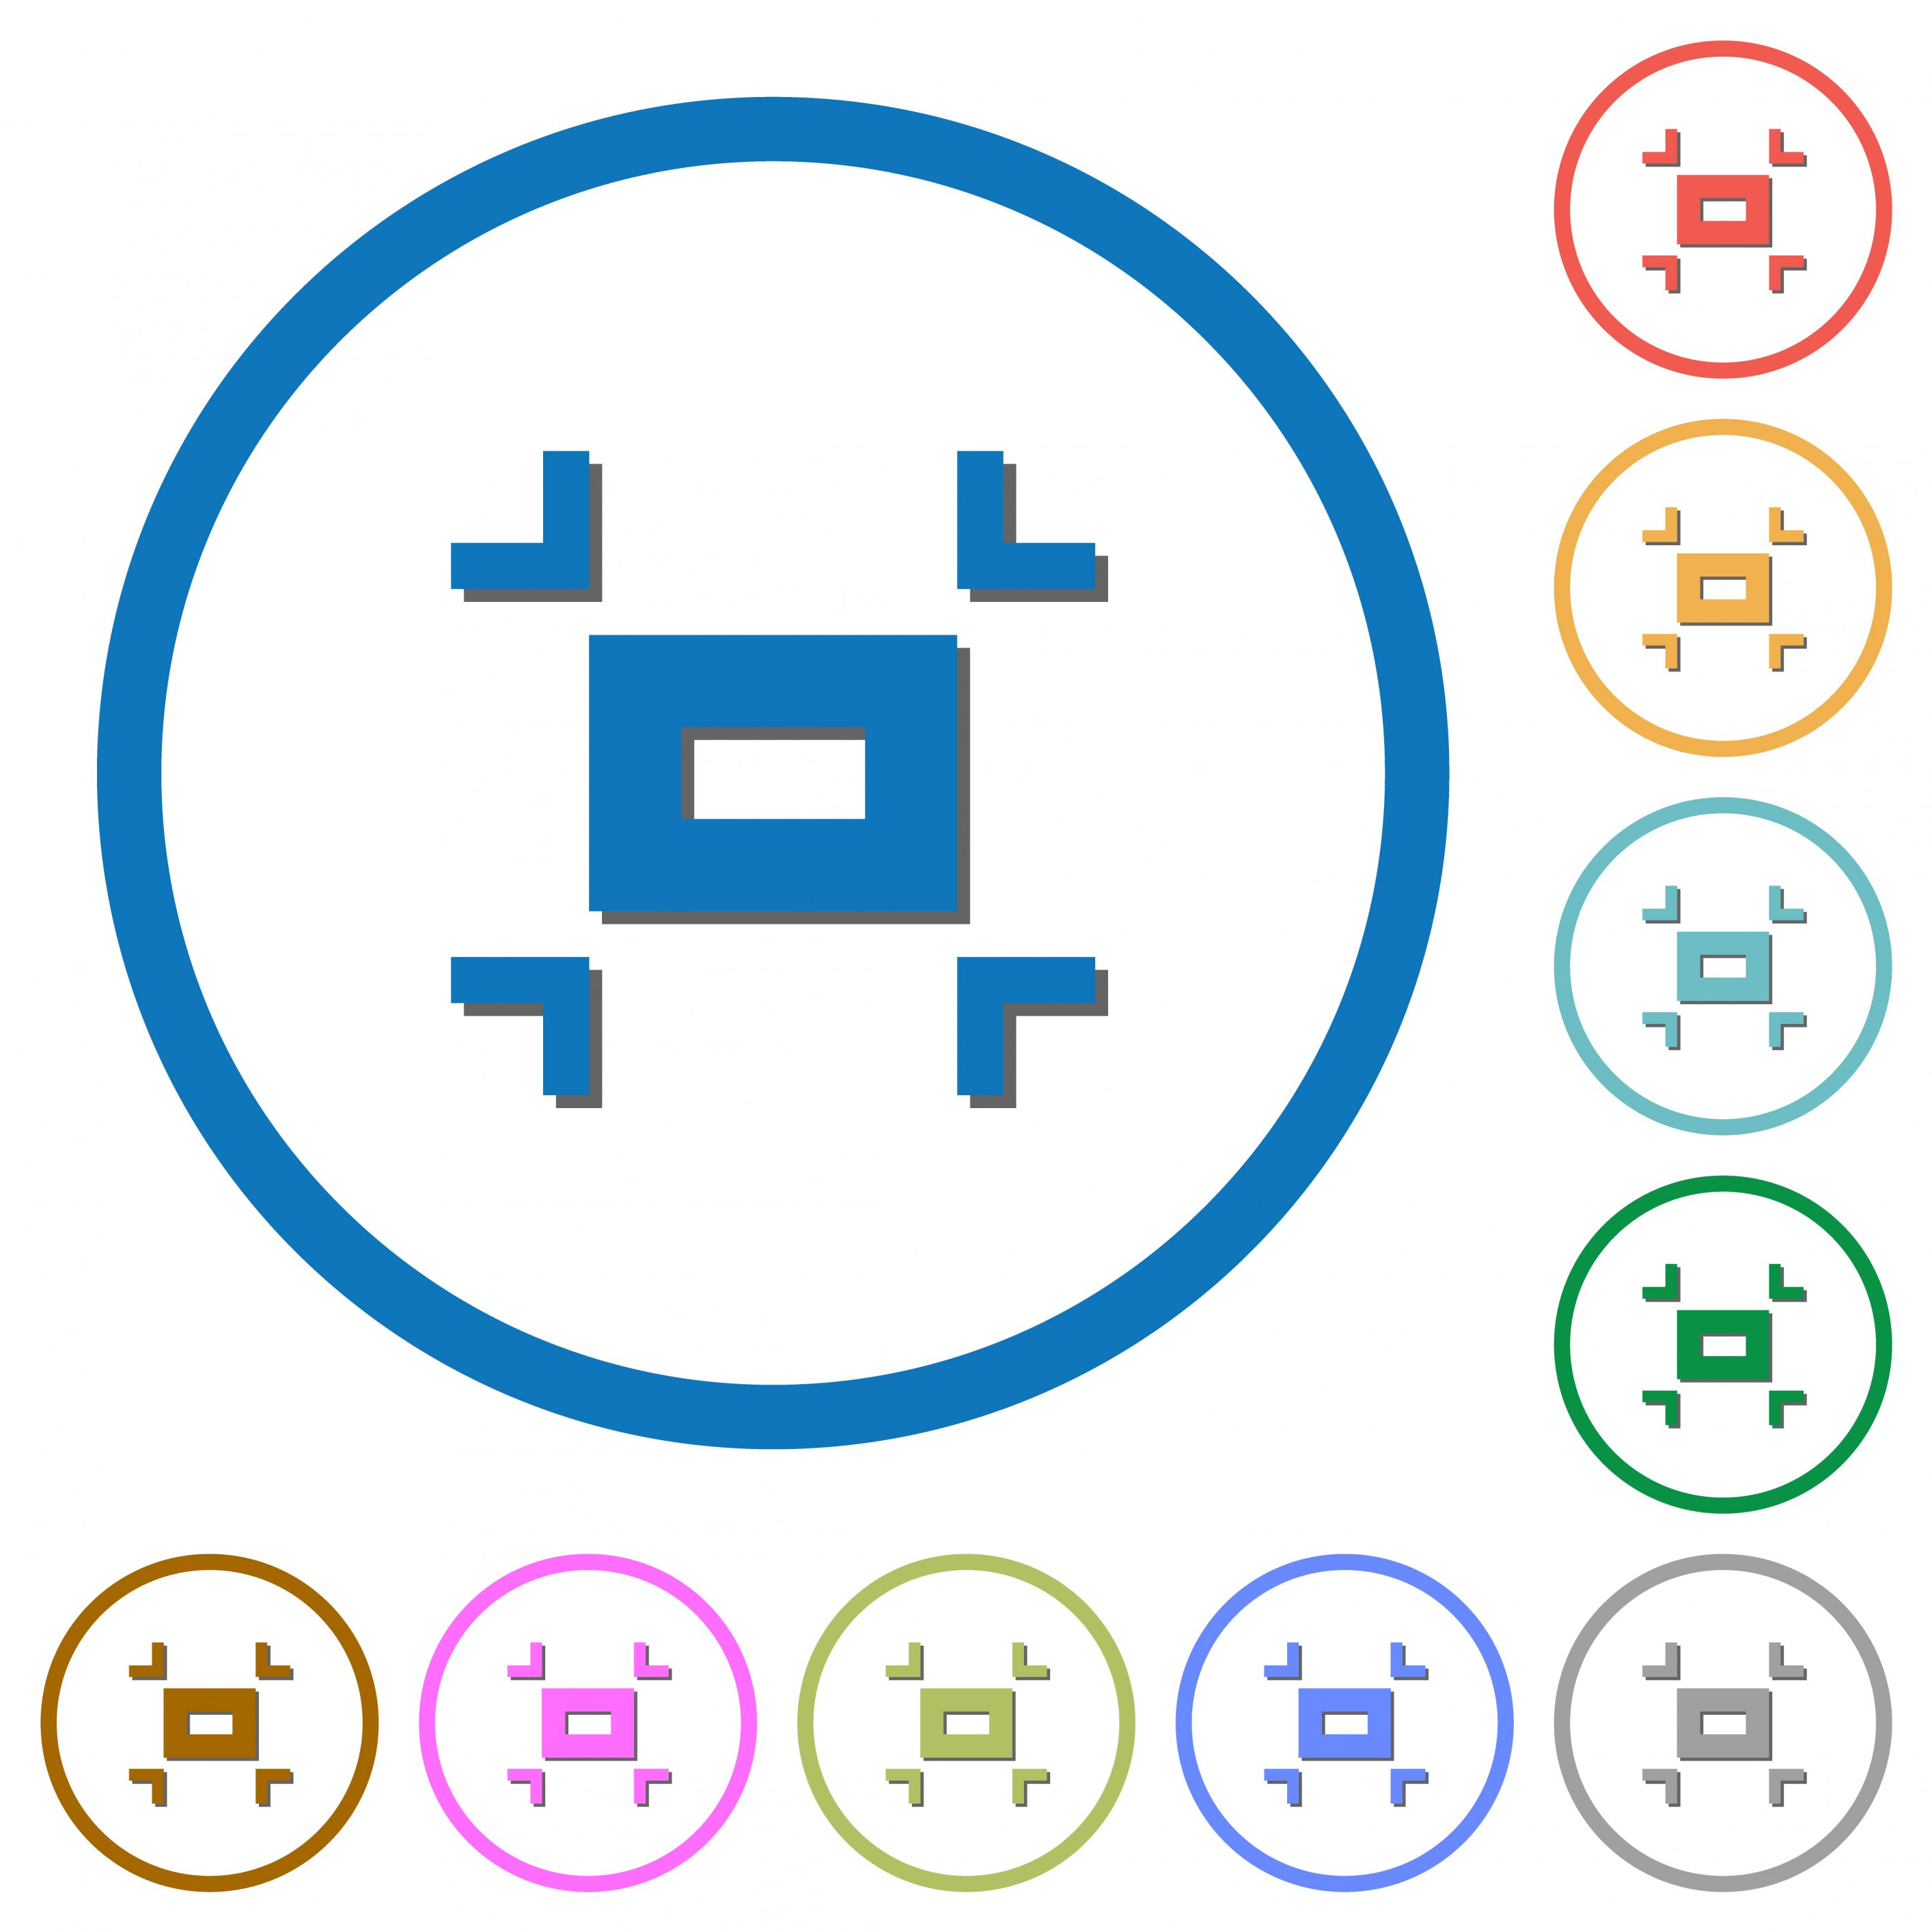 Small screen flat color vector icons with shadows in round outlines on white background - Free image